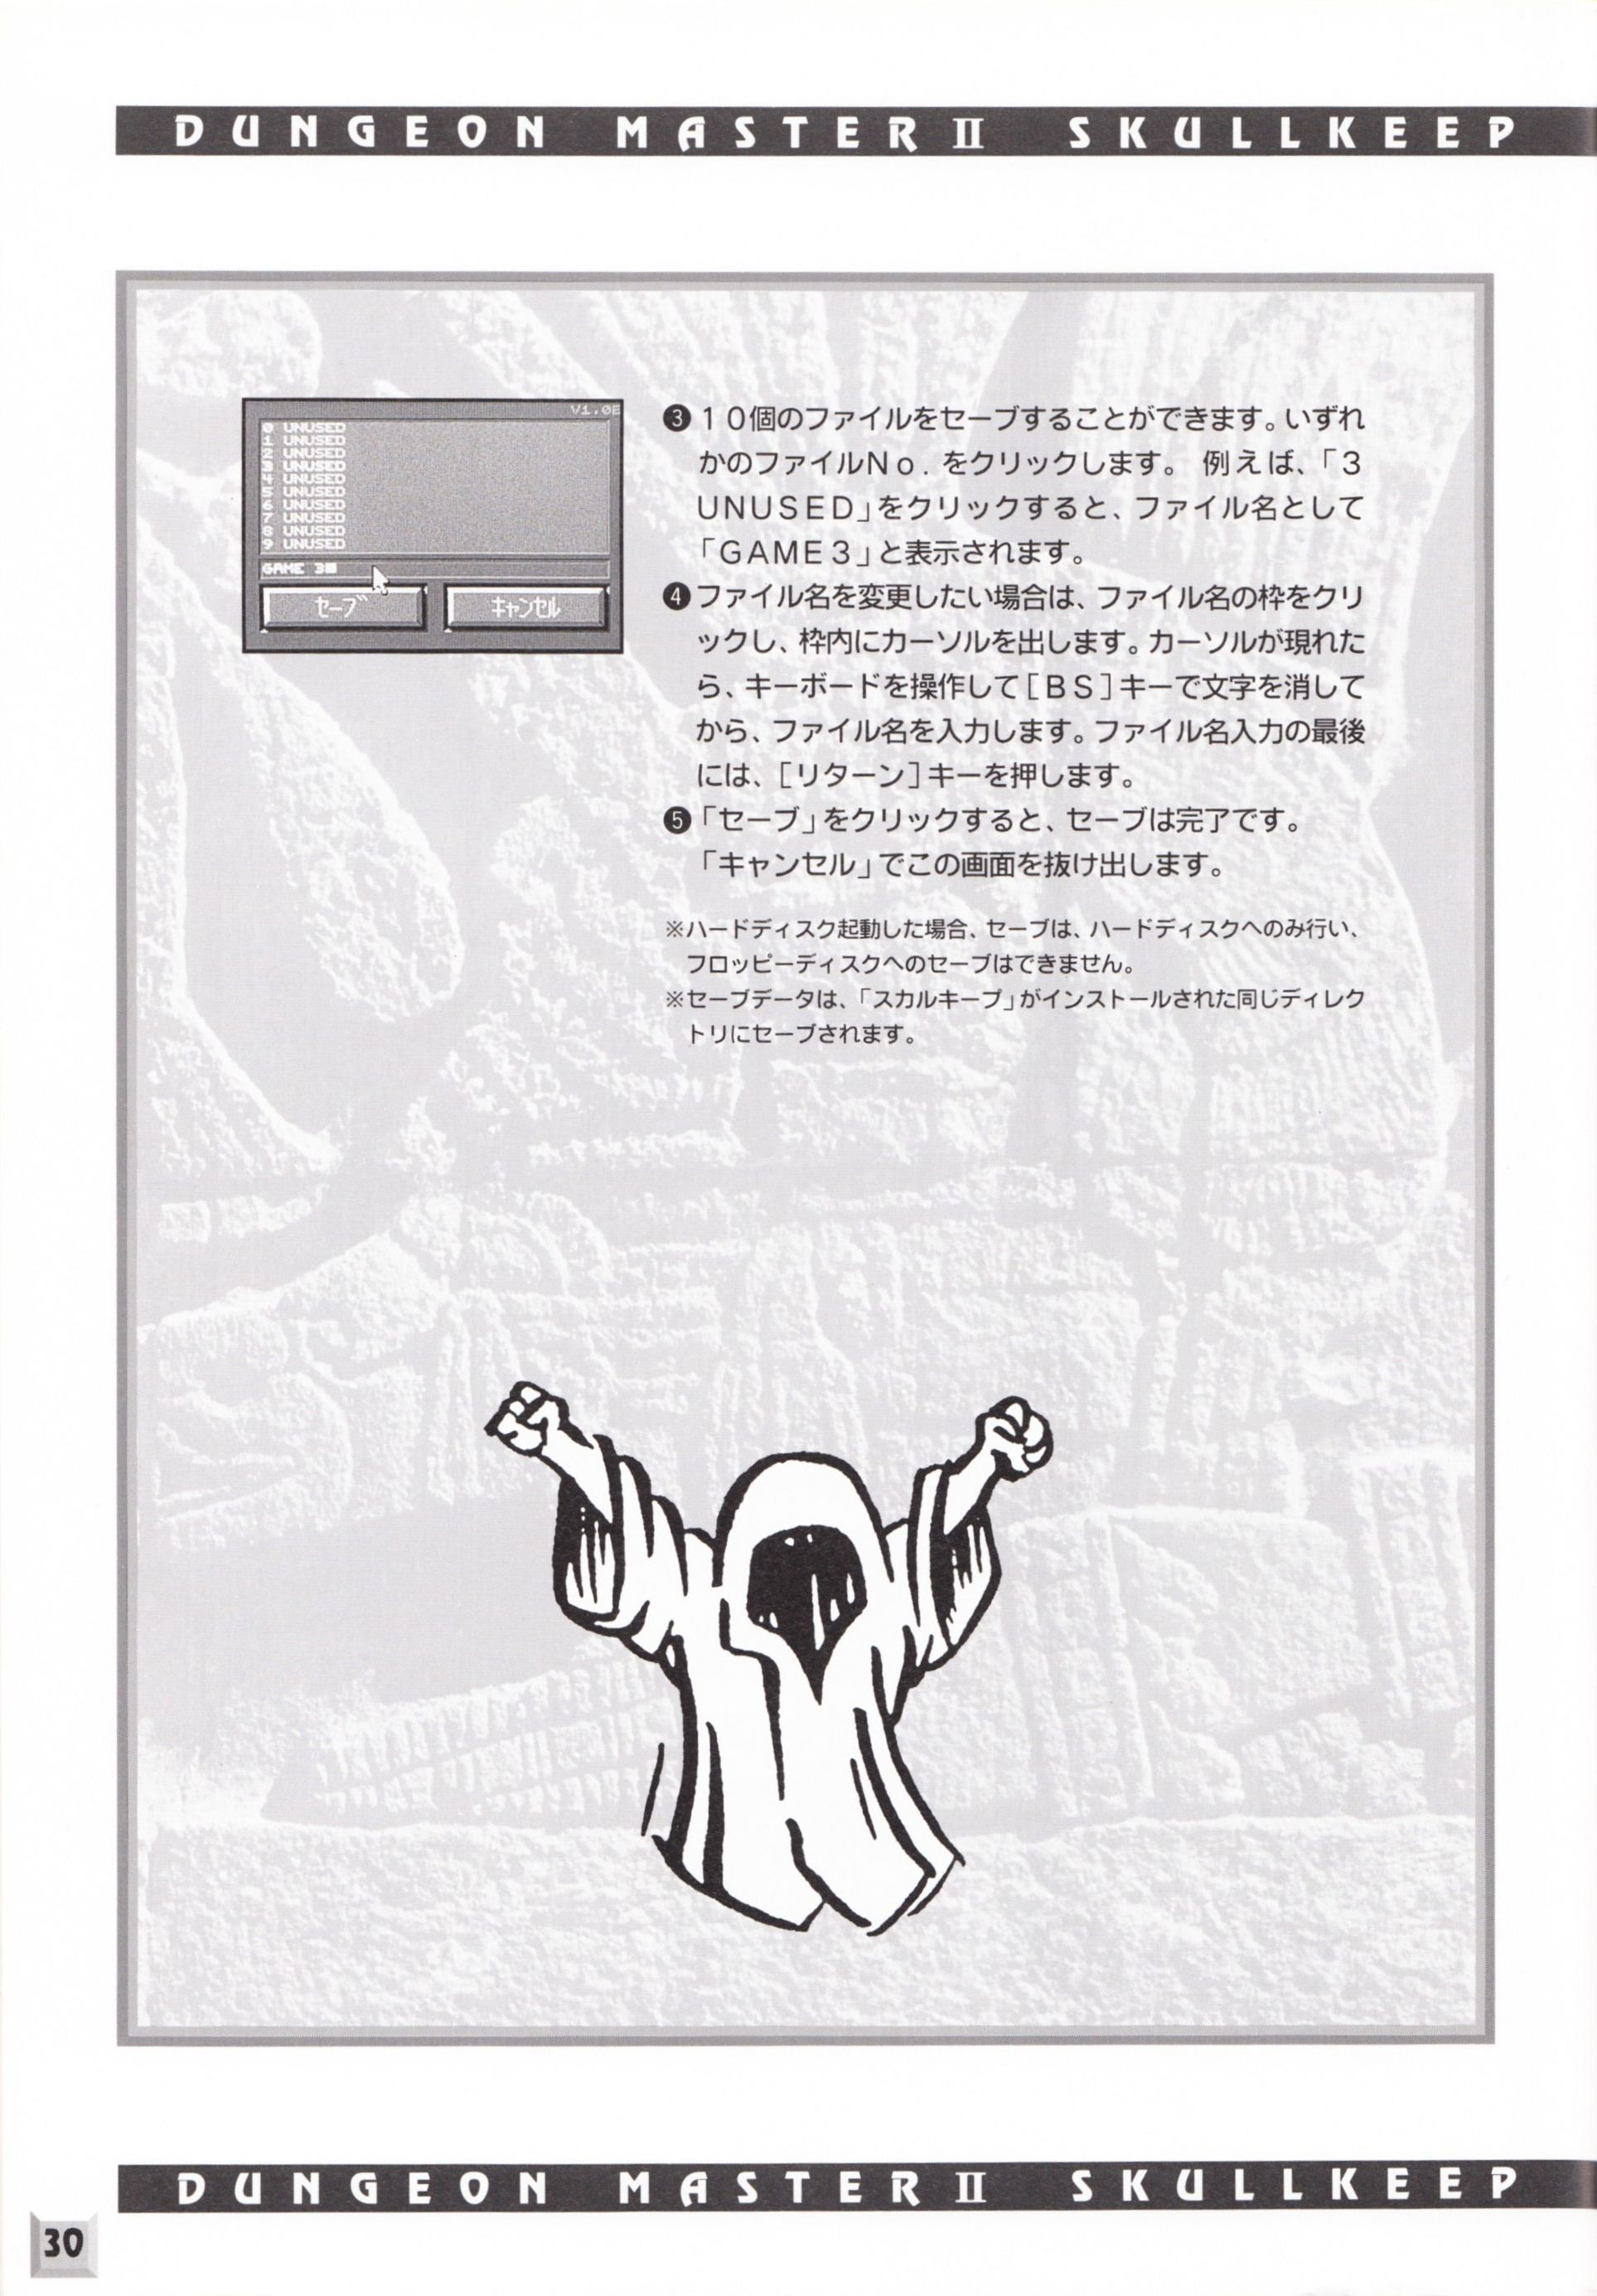 Game - Dungeon Master II - JP - PC-9801 - 3.5-inch - An Operation Manual - Page 032 - Scan